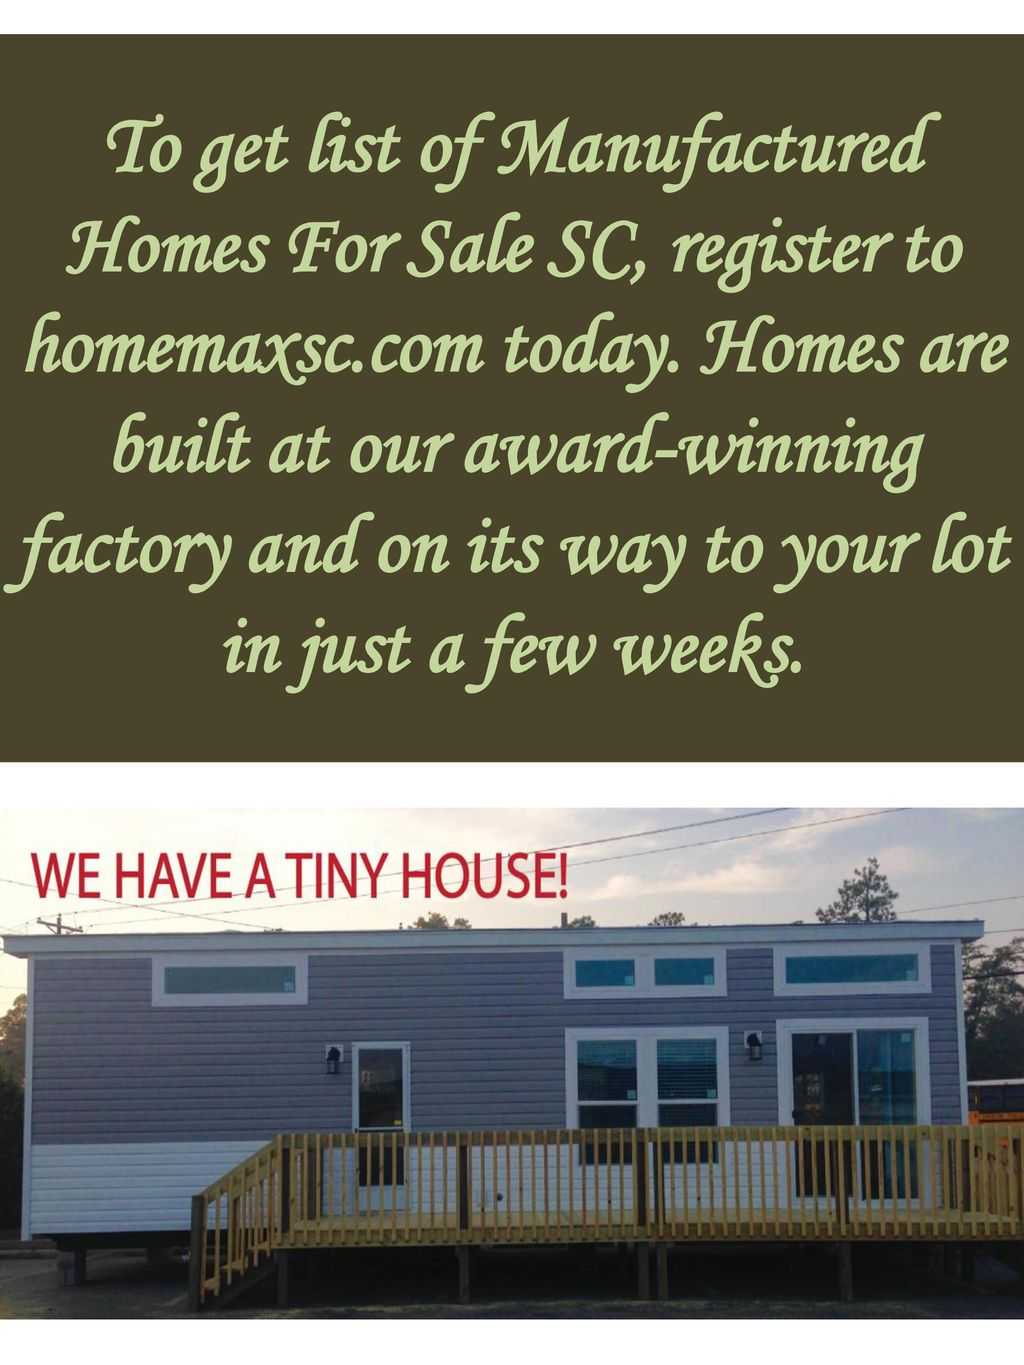 To get list of Manufactured Homes For Sale SC, register to homemaxsc